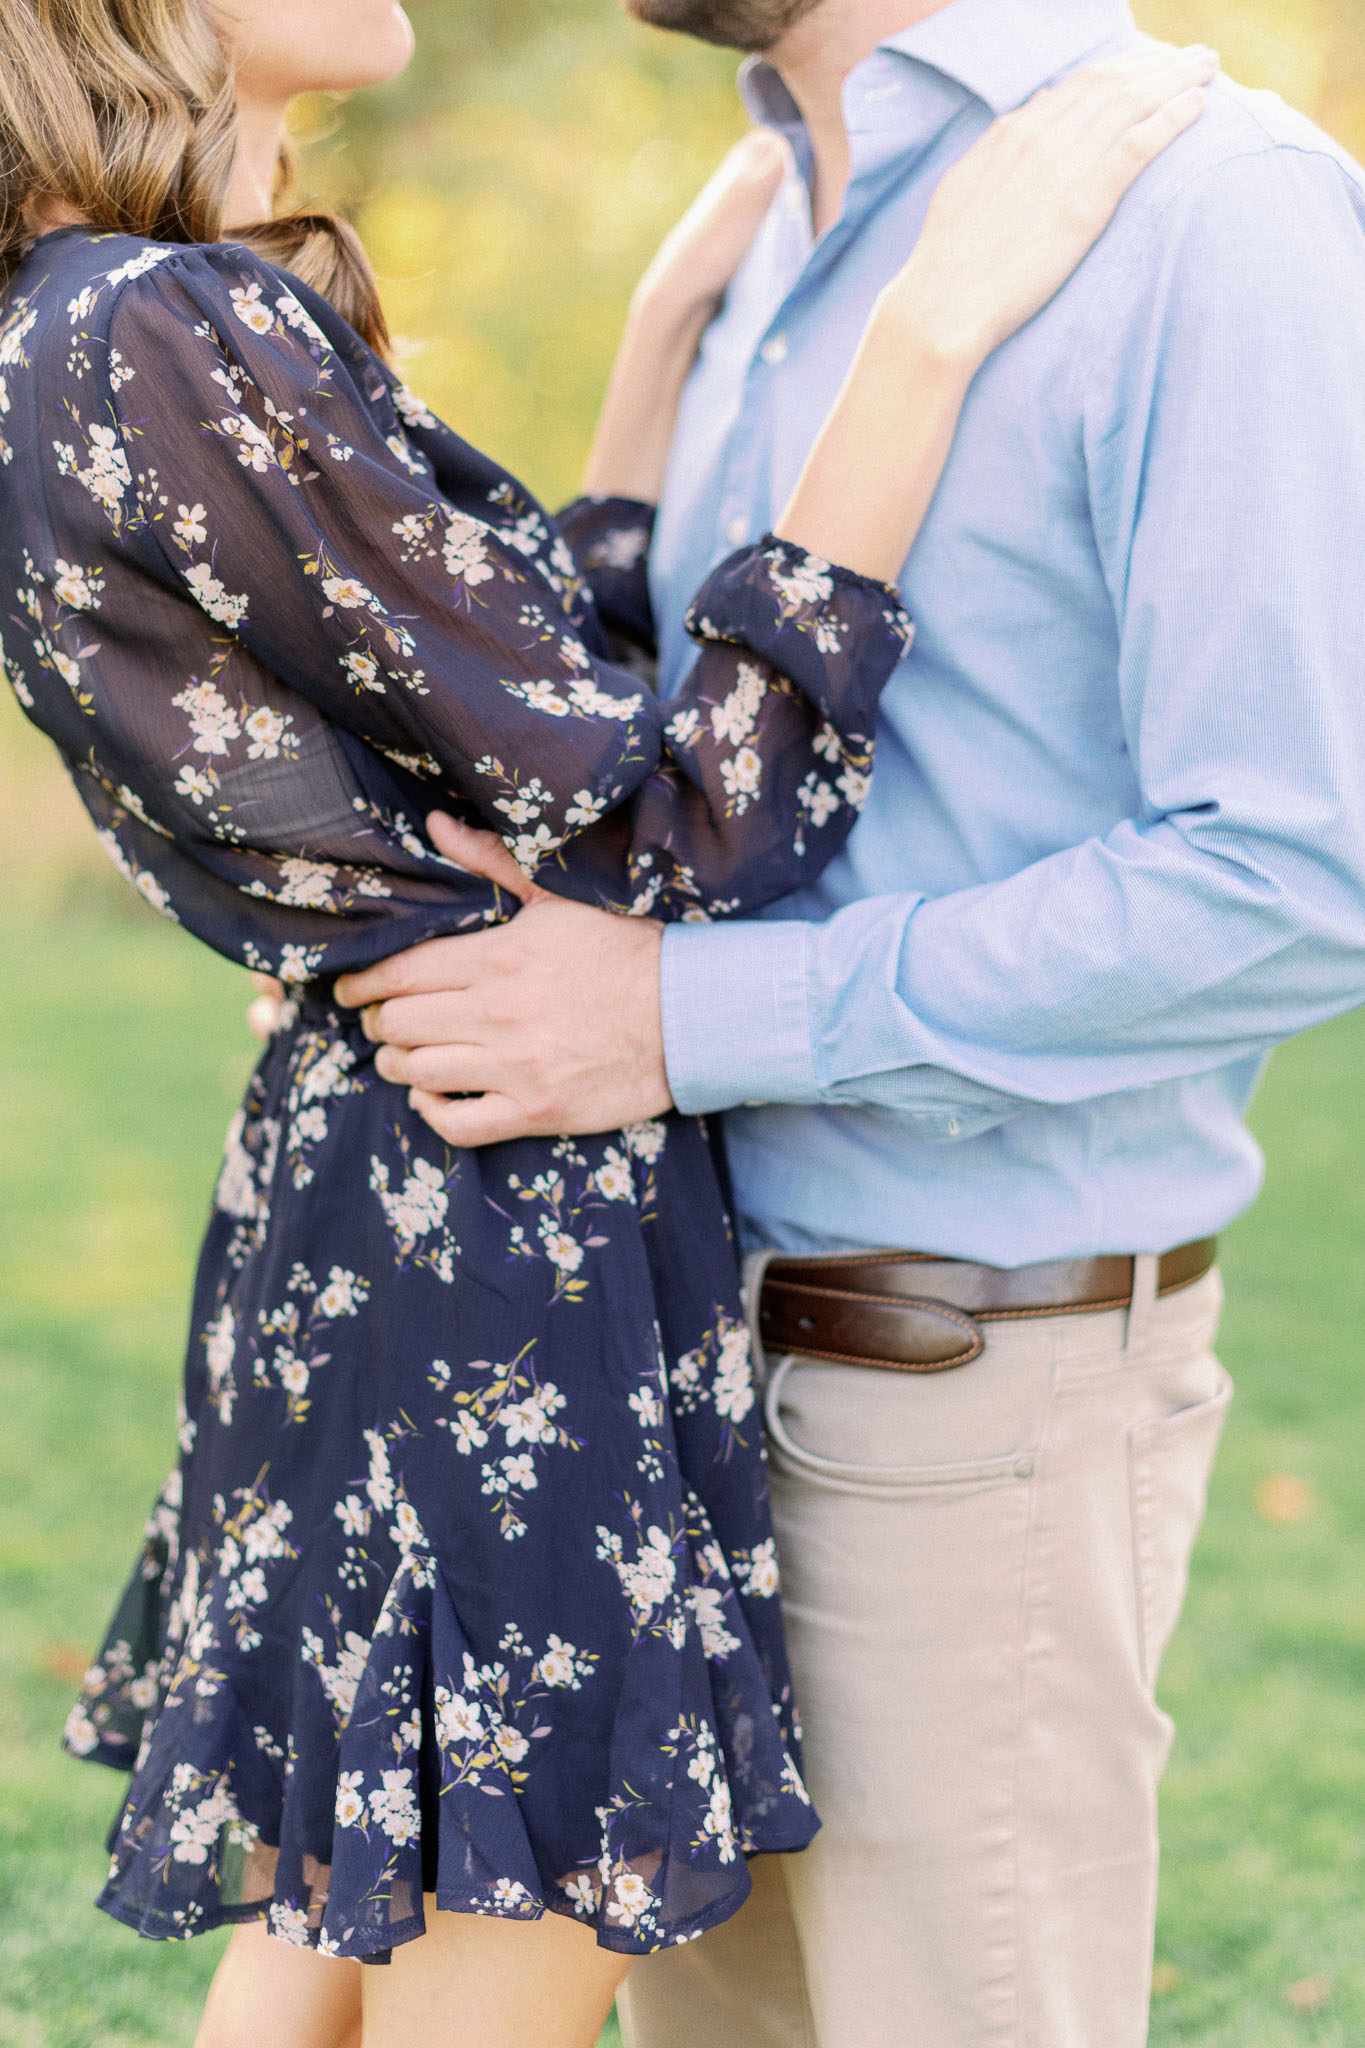 Chicago Fine Art Film Photographer – Lincoln Park Engagement Photos-6